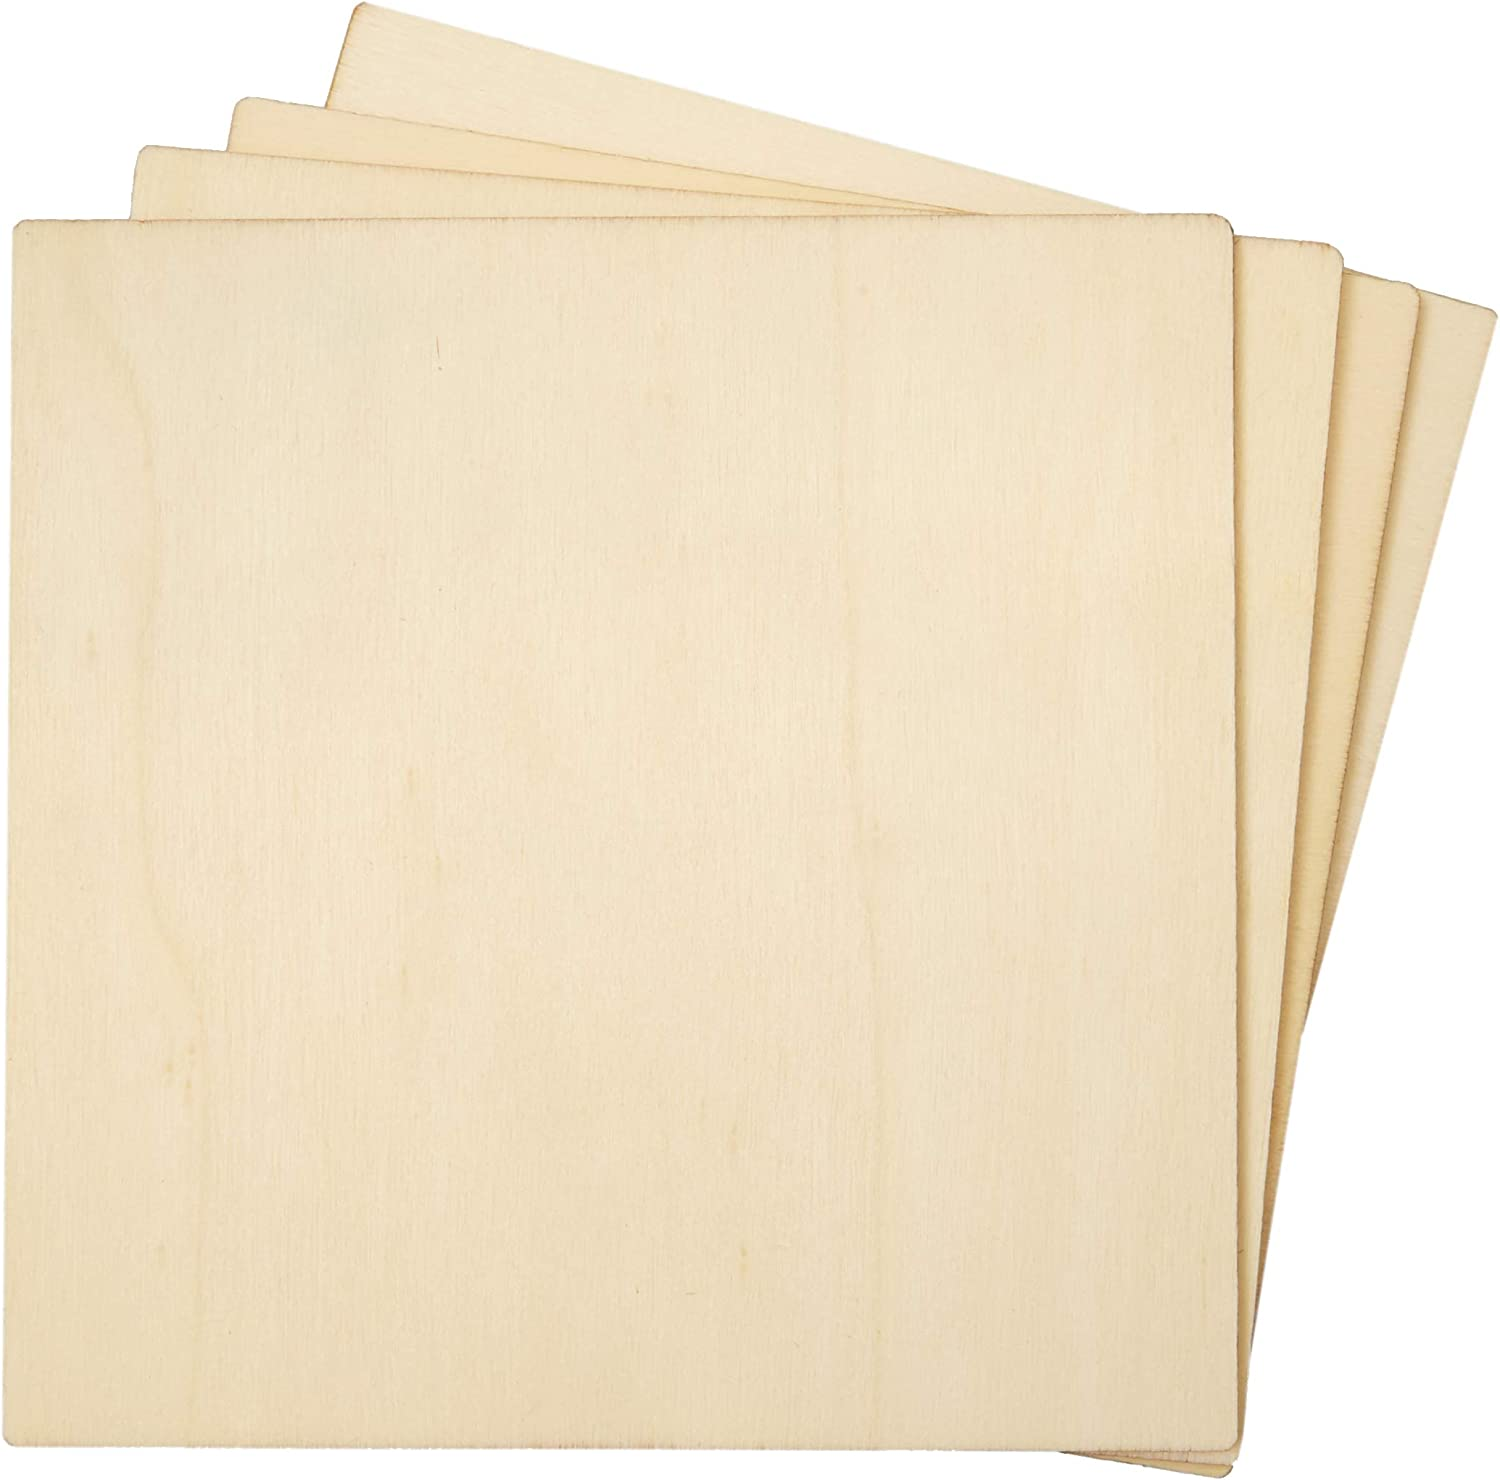 Wooden Cutouts for Crafts, Wood Squares (5 x 5 in, 36 Pieces)